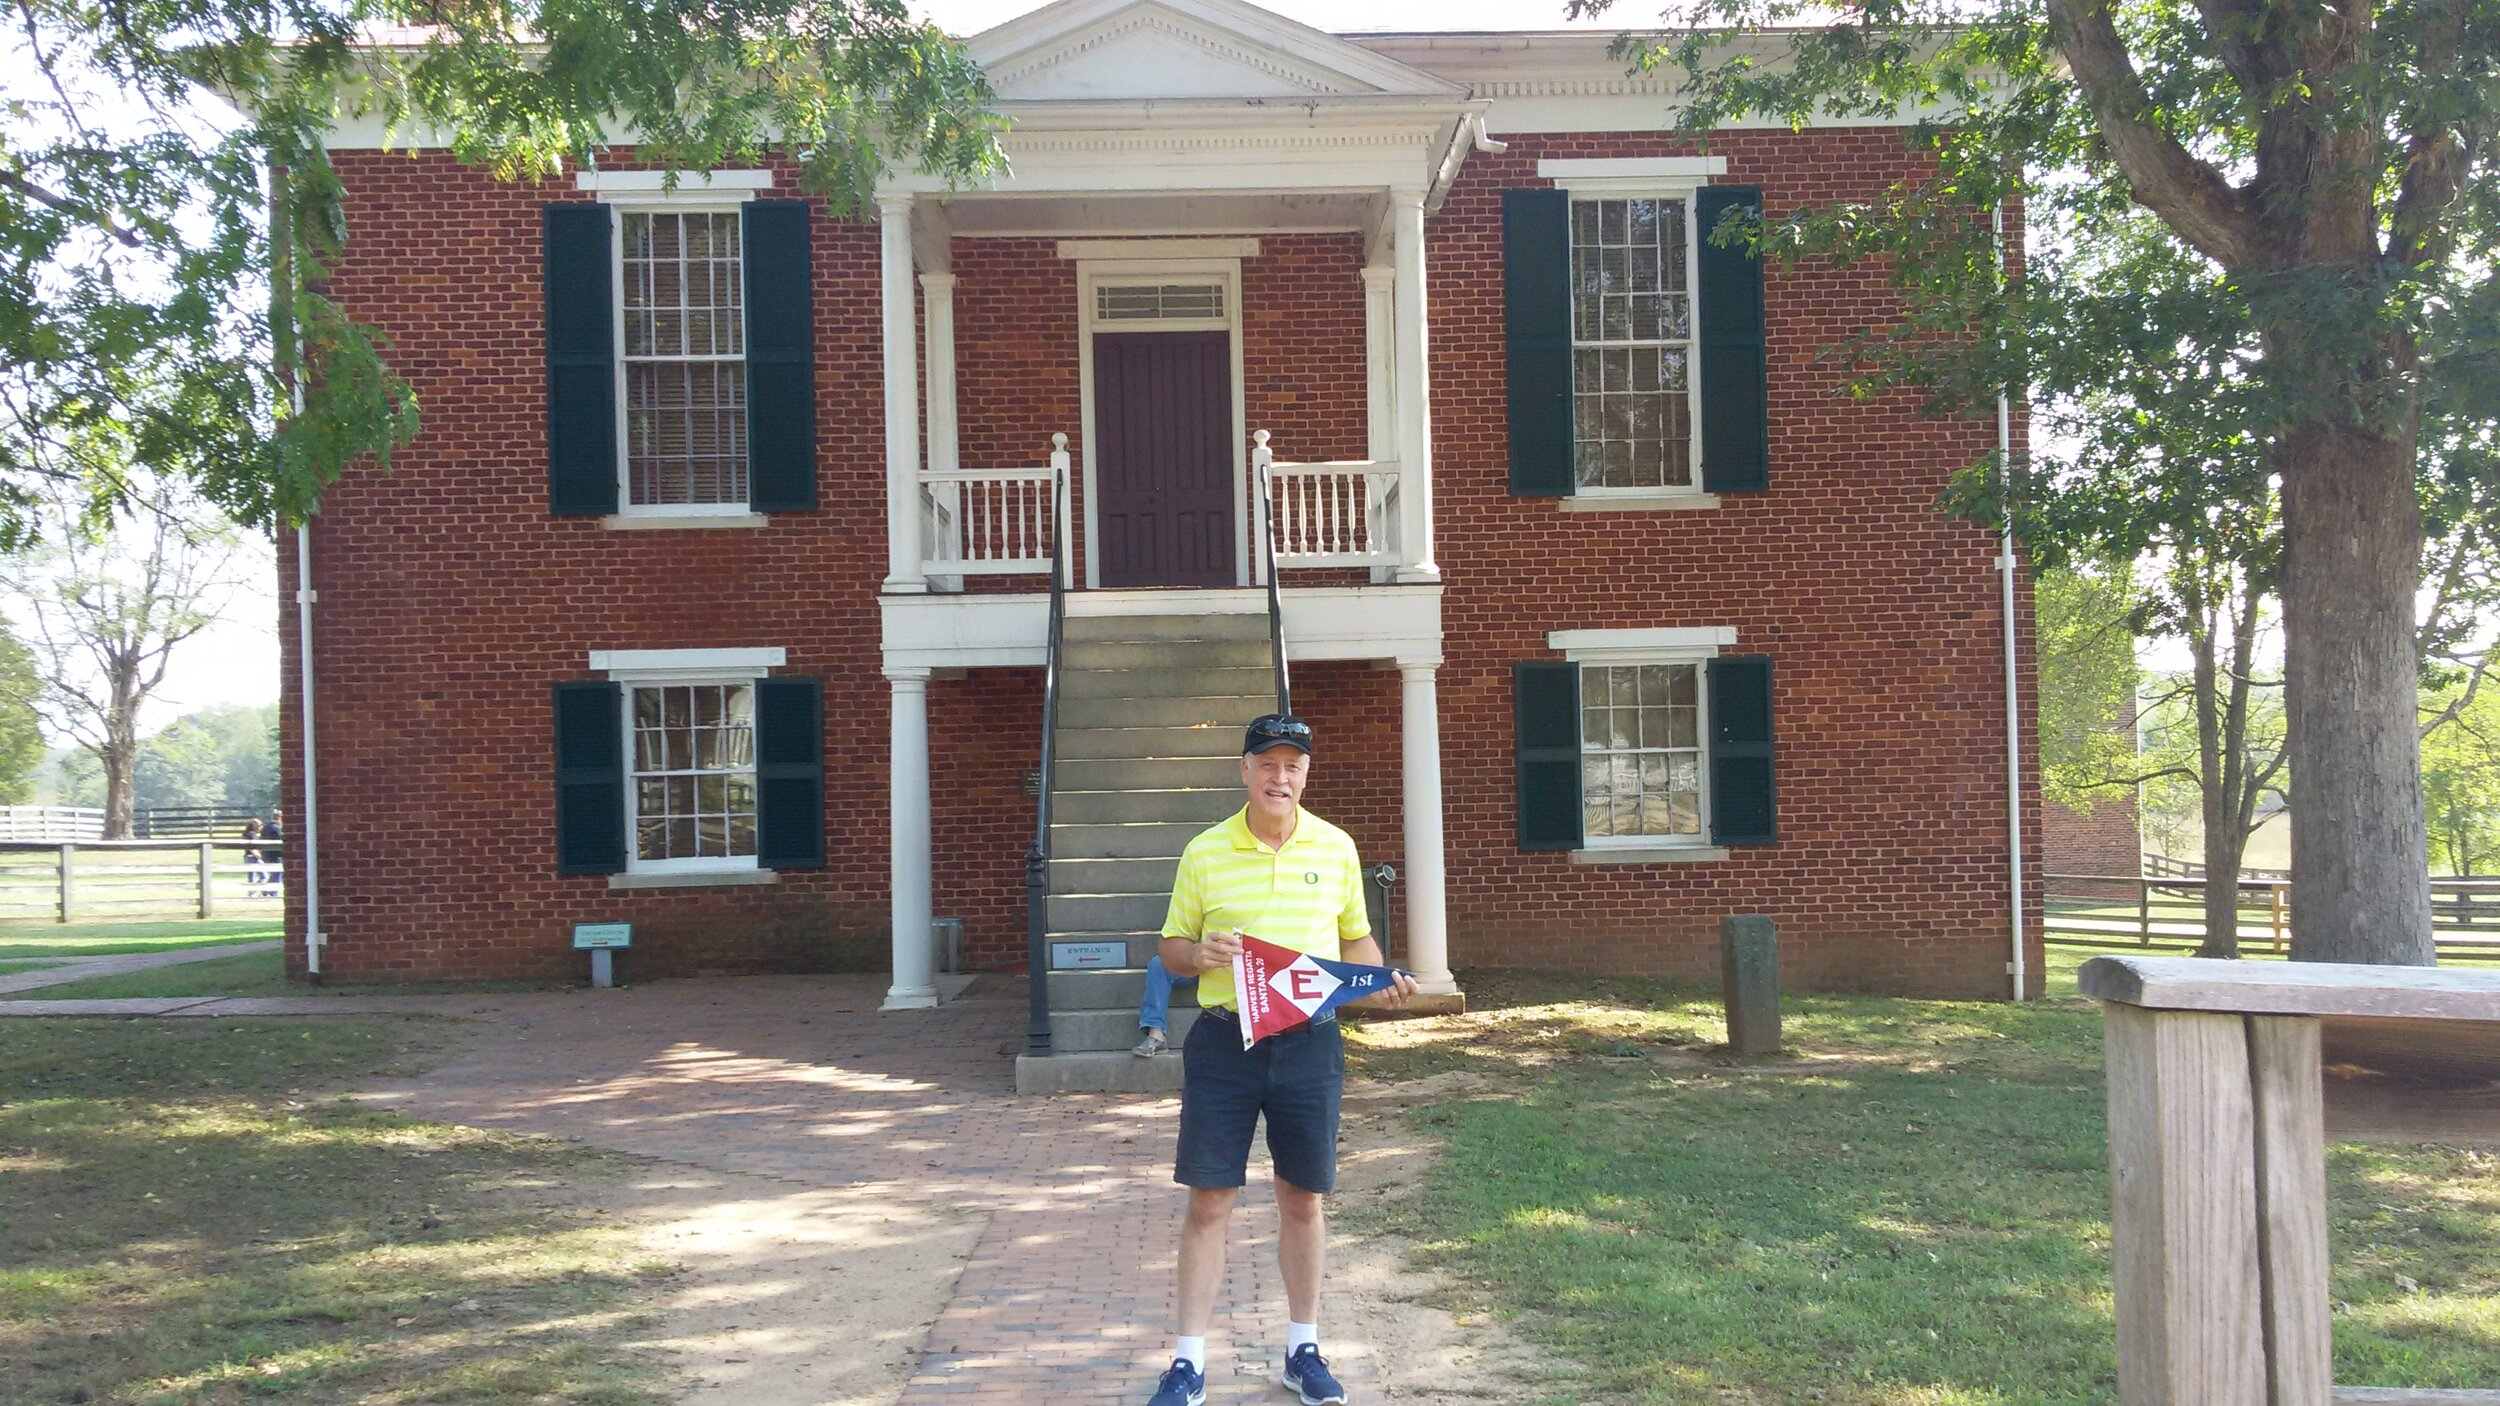 Paul shows his pride in front of the Appomattox Courthouse in Virginia